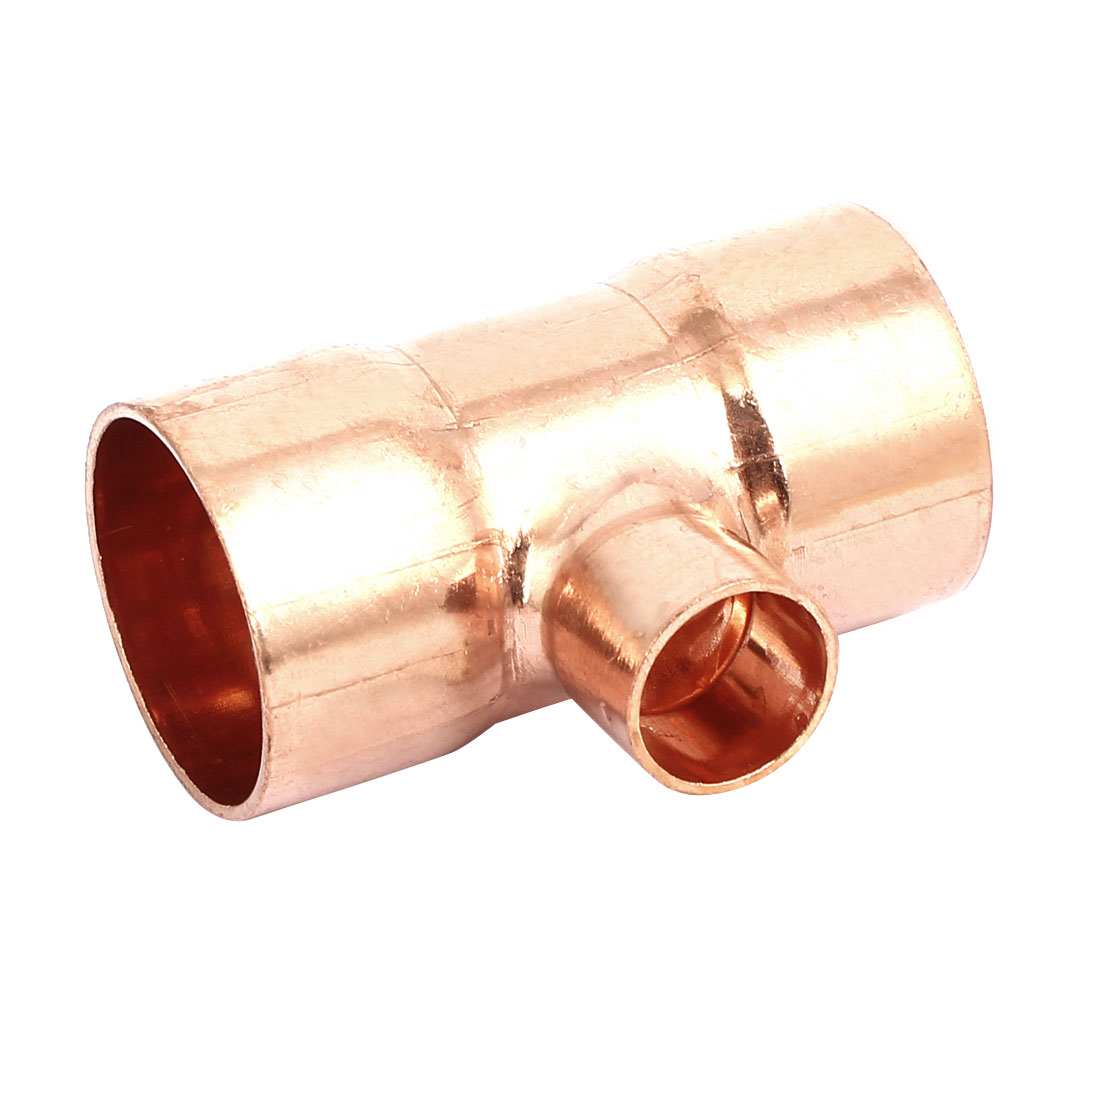 32mmx16mm Air Conditioner Copper Tee Joint Seperation Tube Connector